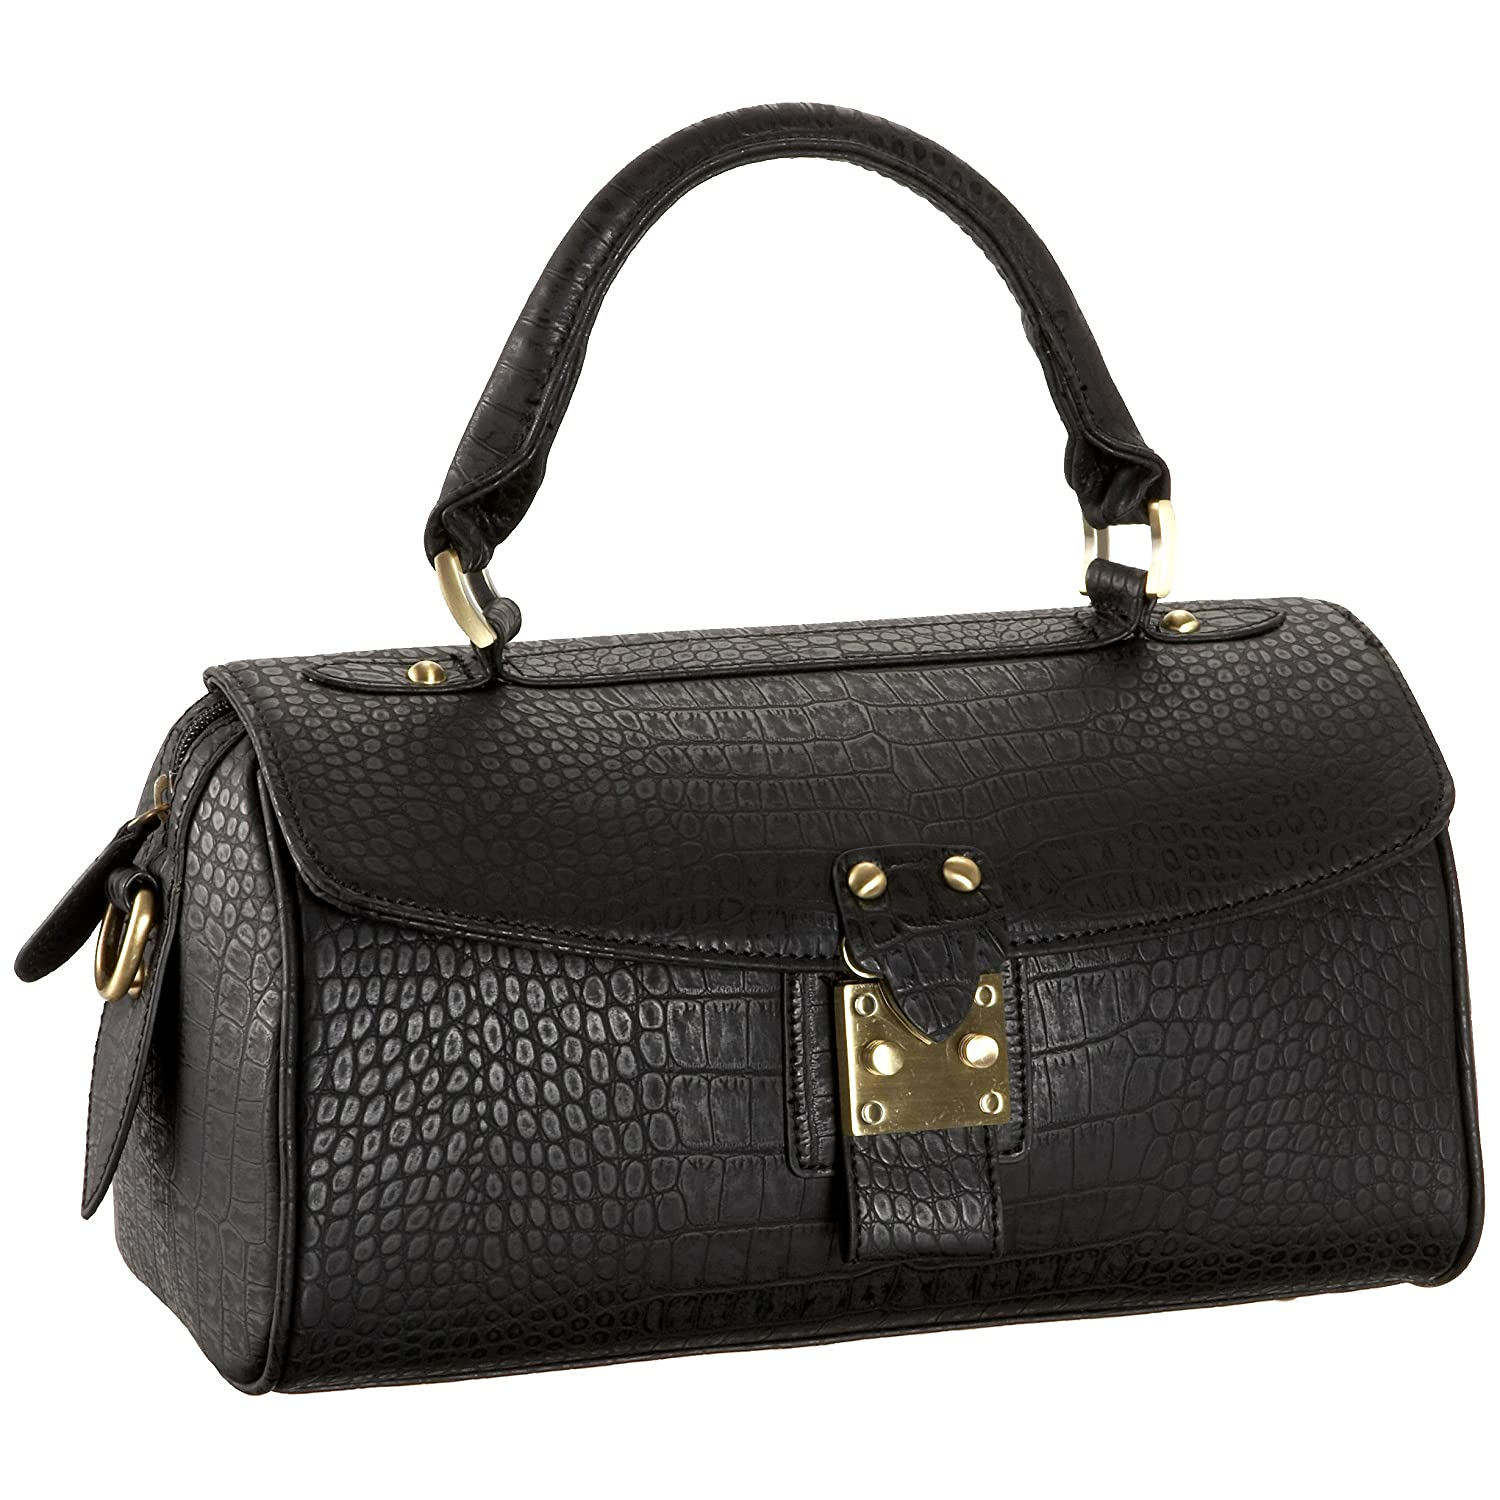 High Fashion Handbags - Croc-Embossed Satchel from endless.com